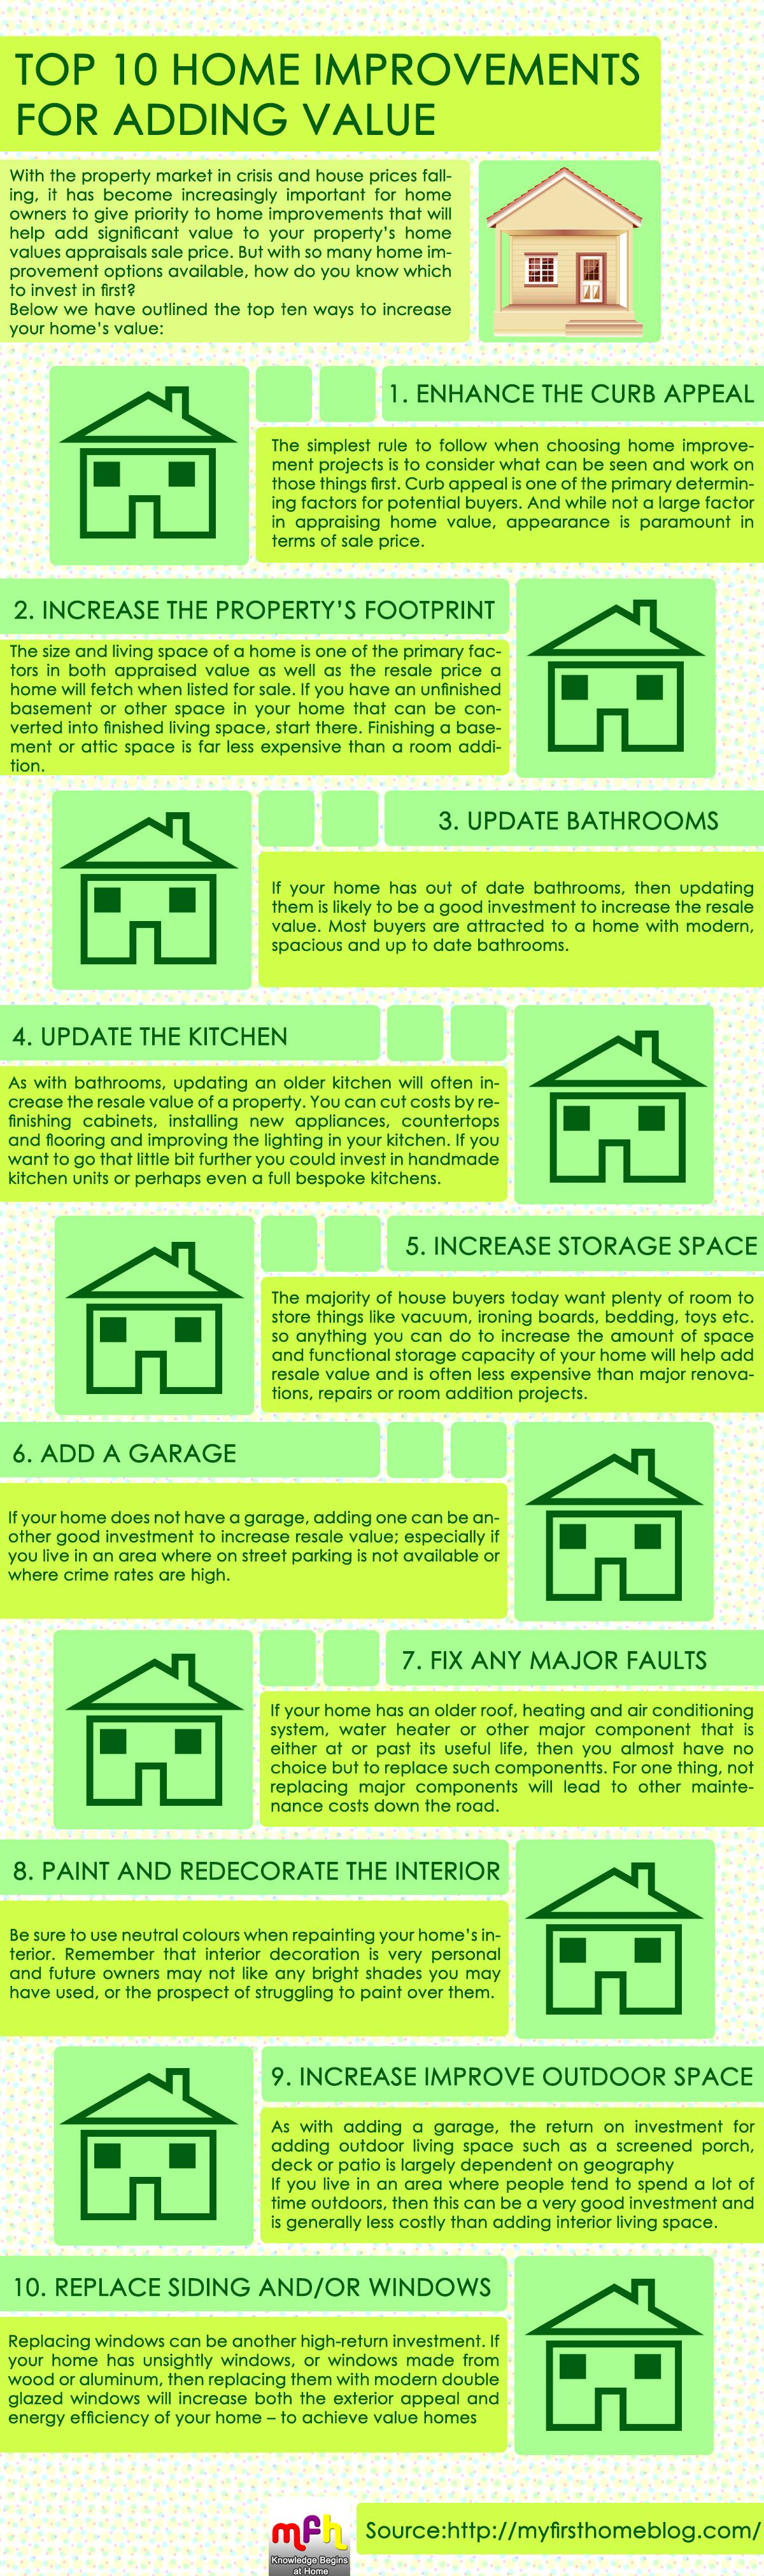 High Quality Top 10 Home Improvements For Adding Value With The Property Market In  Crisis And House Prices Falling, It Has Become Increasingly Important For  Home Owners ...